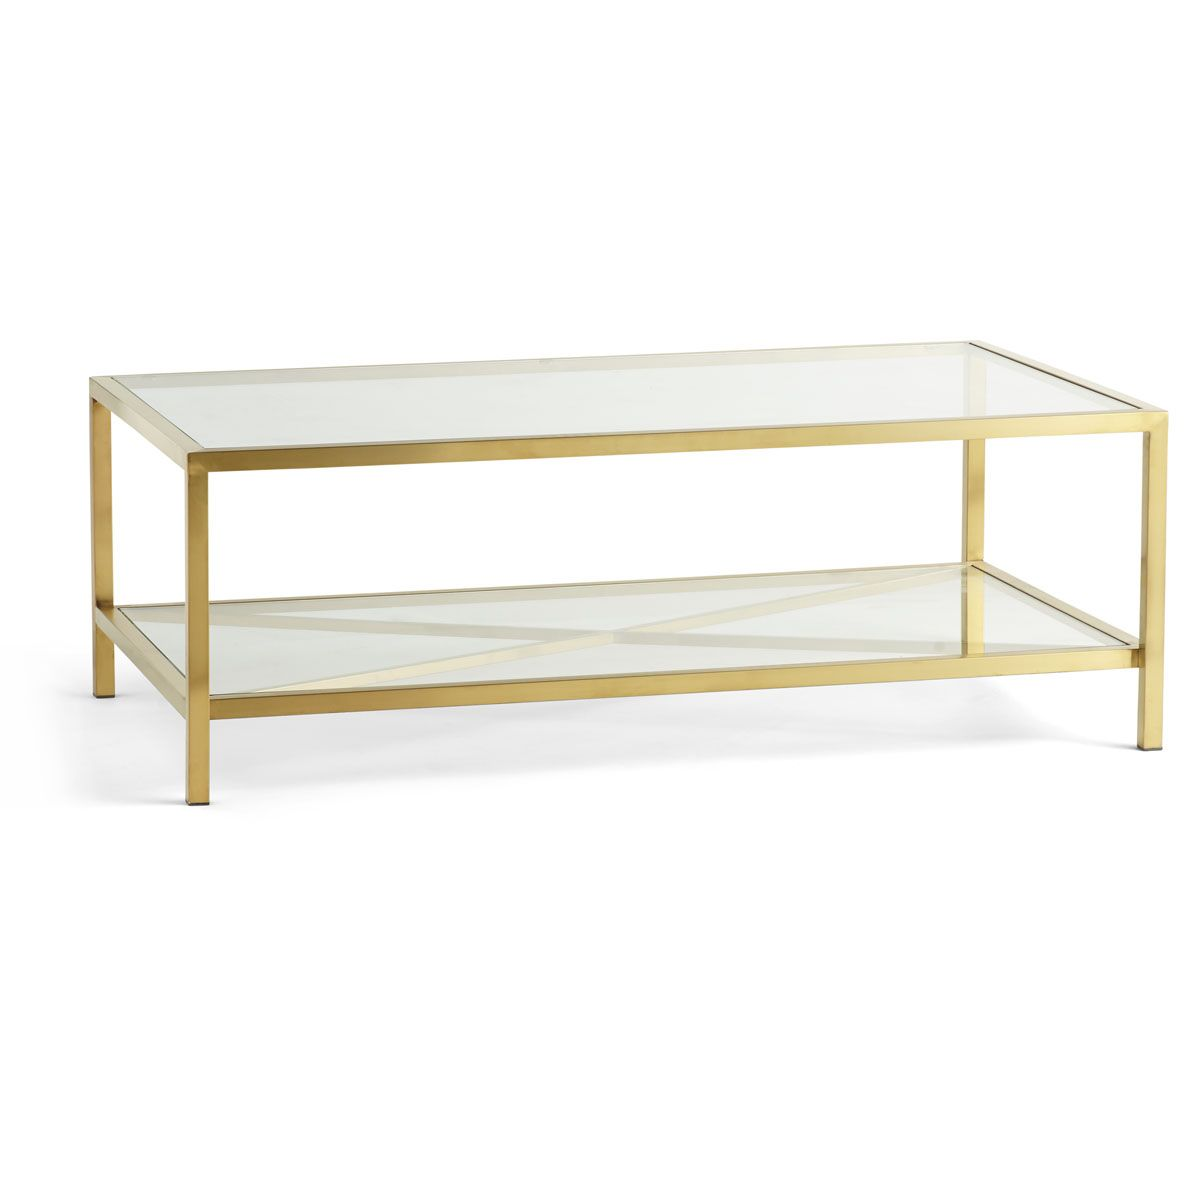 fabulous 1312 tea table living room furniture tempered glass | X-Base Coffee Table | Products in 2019 | Table, Table ...